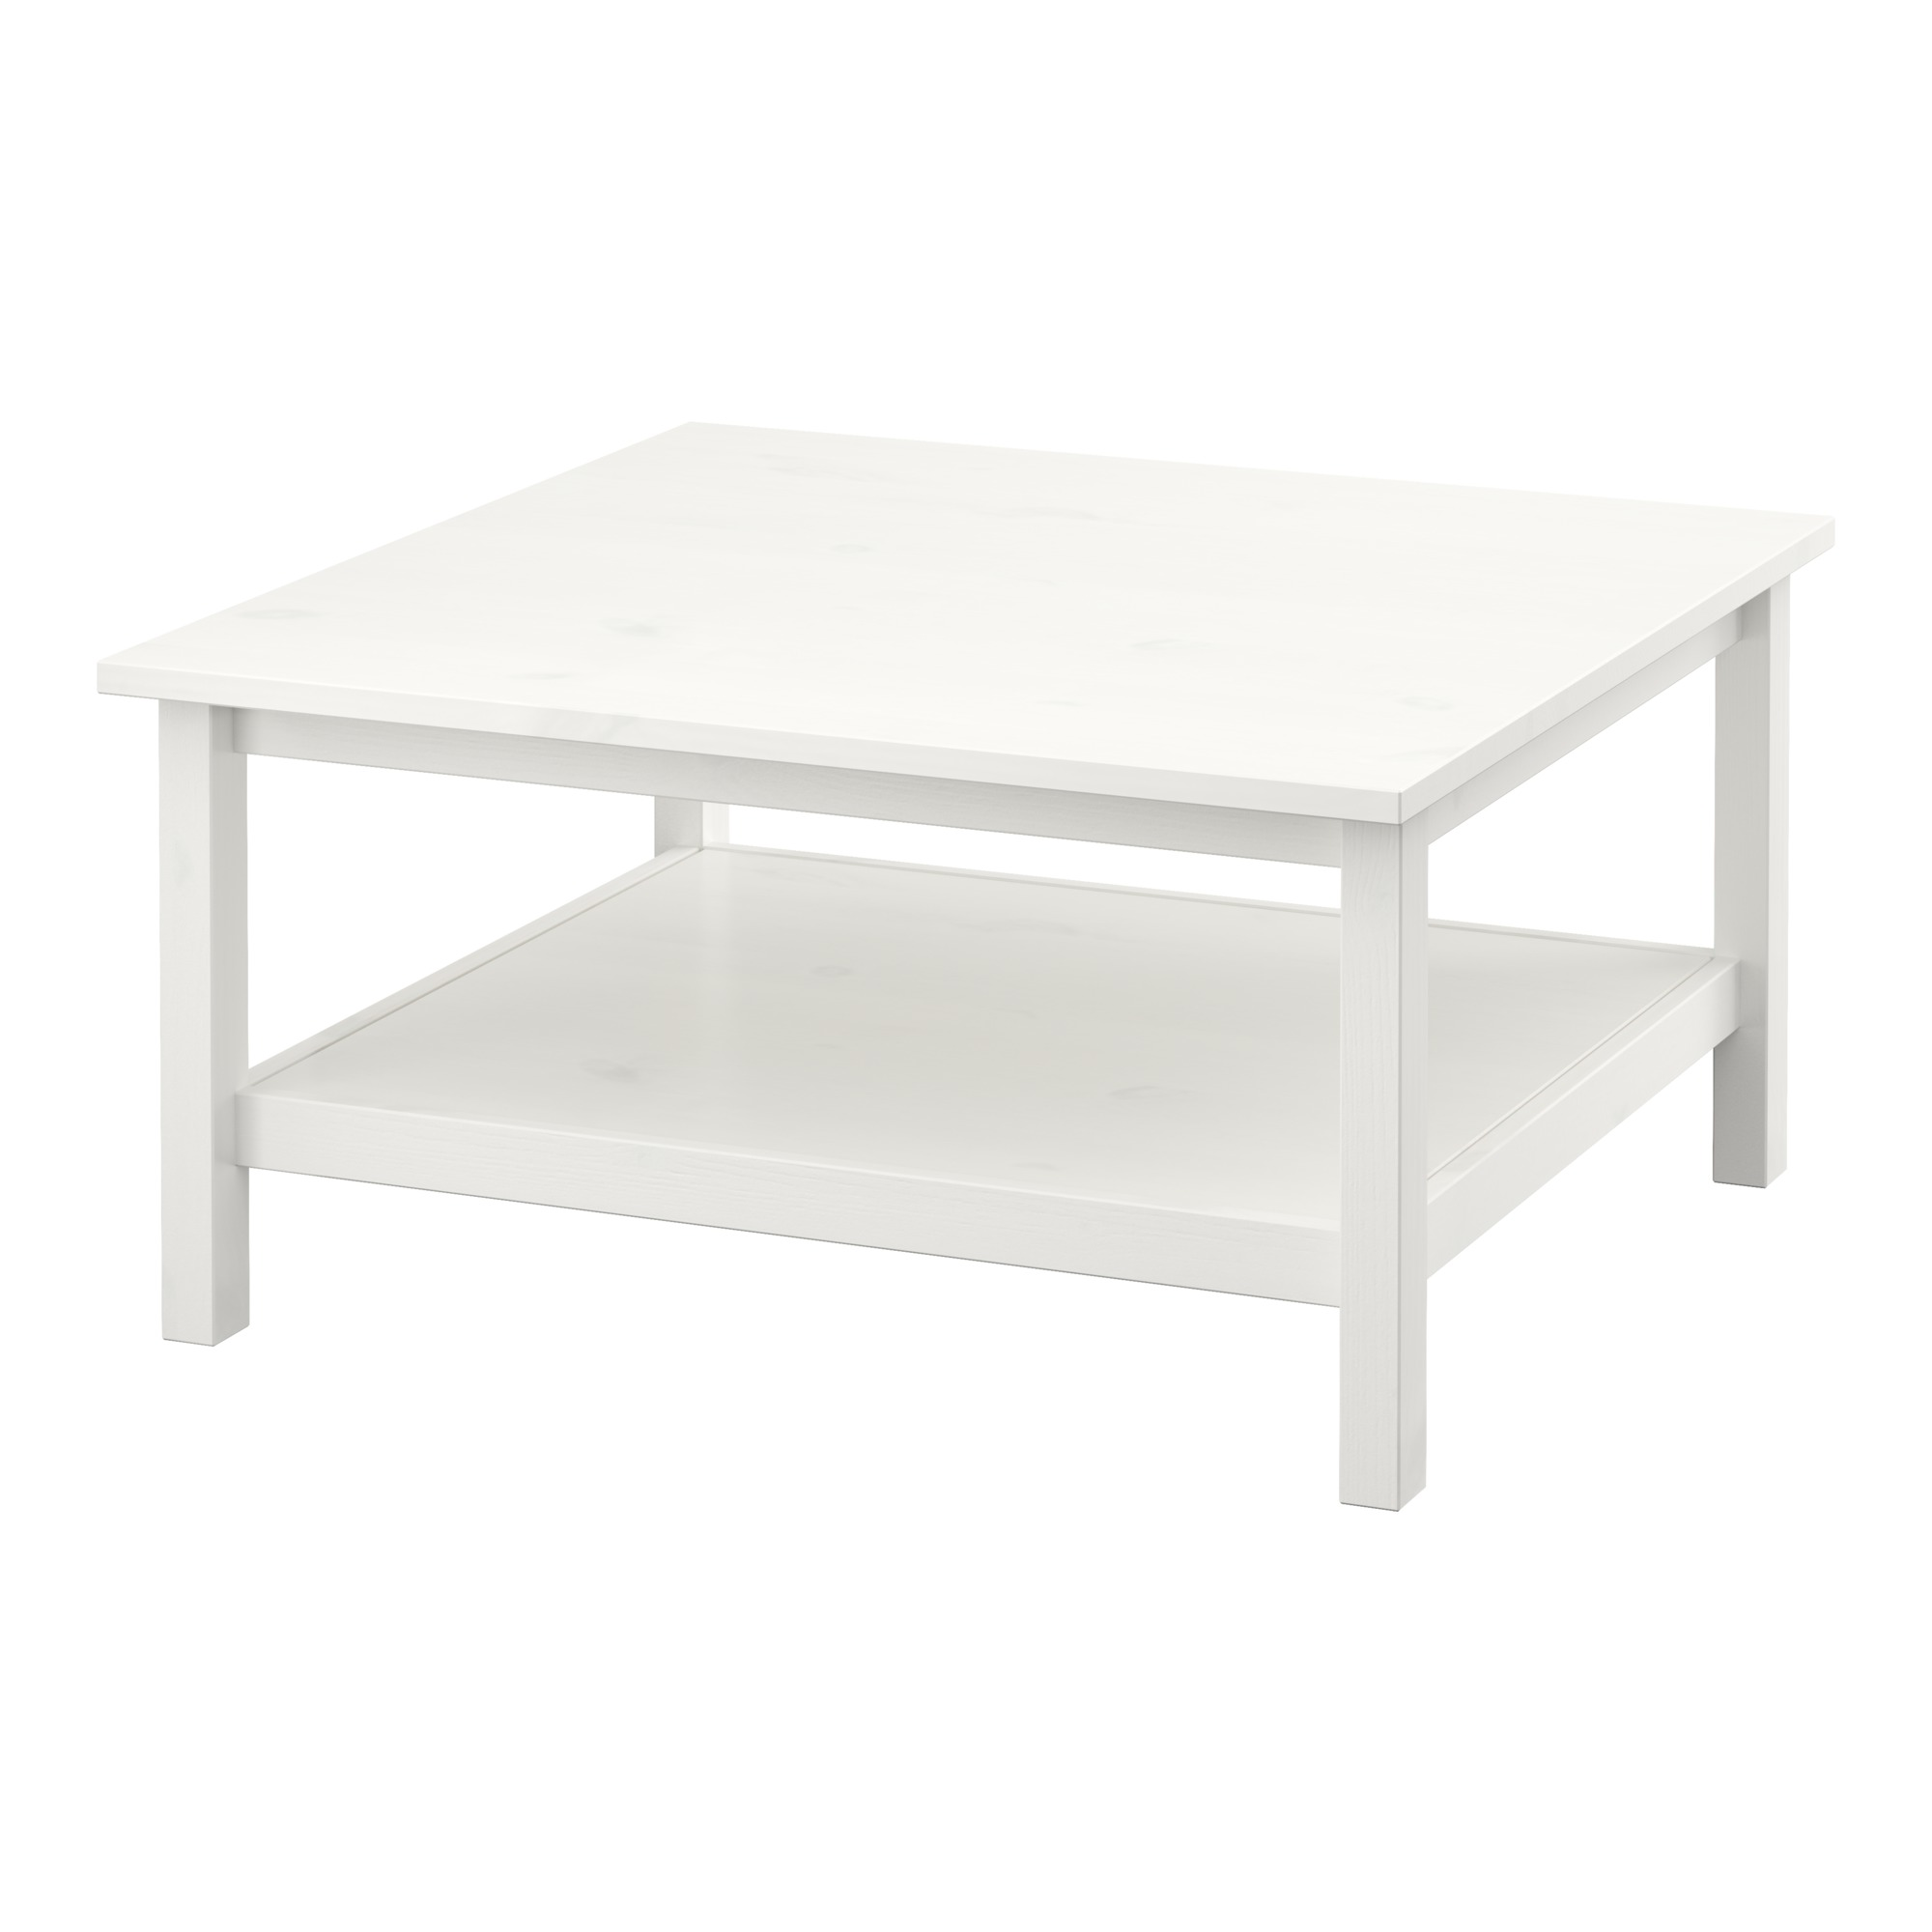 remarkable ikea storage coffee table wallercountyelections hemnes white stain solid wood has natural feel narrow side small accent modern metal and glass bedside charging station